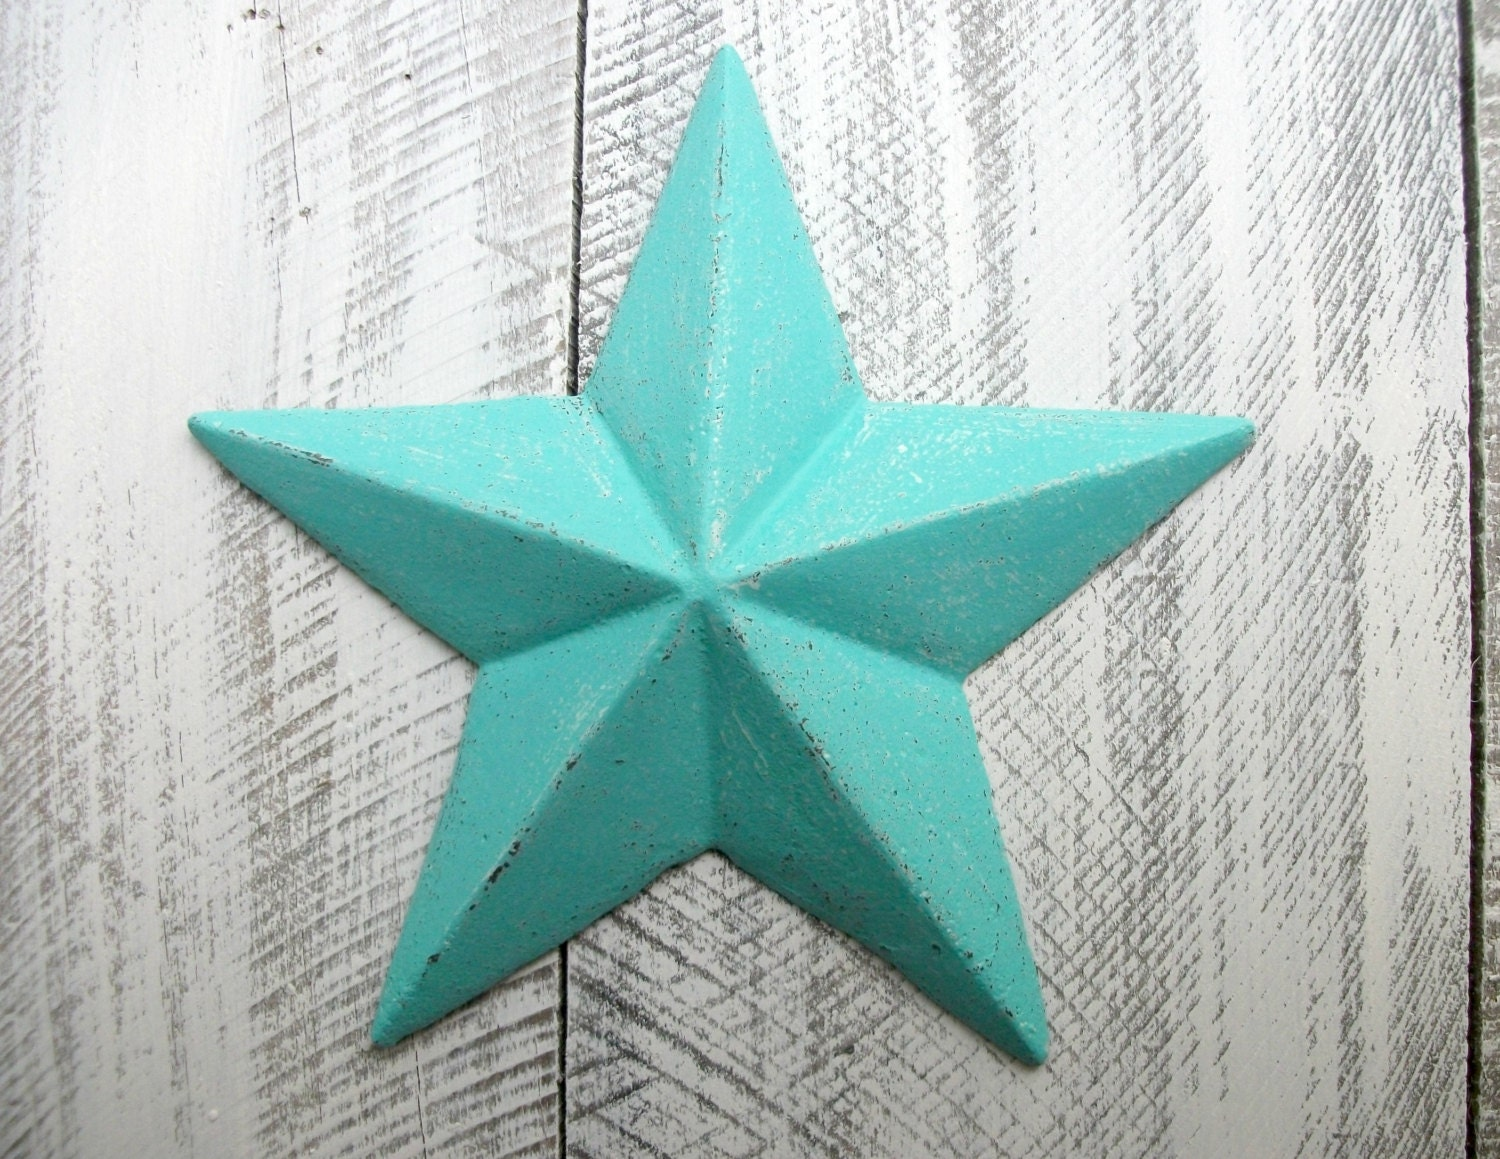 Star Wall Decor Ideas: Bright Teal Cast Iron Star Wall Decor Blue Indoor Outdoor